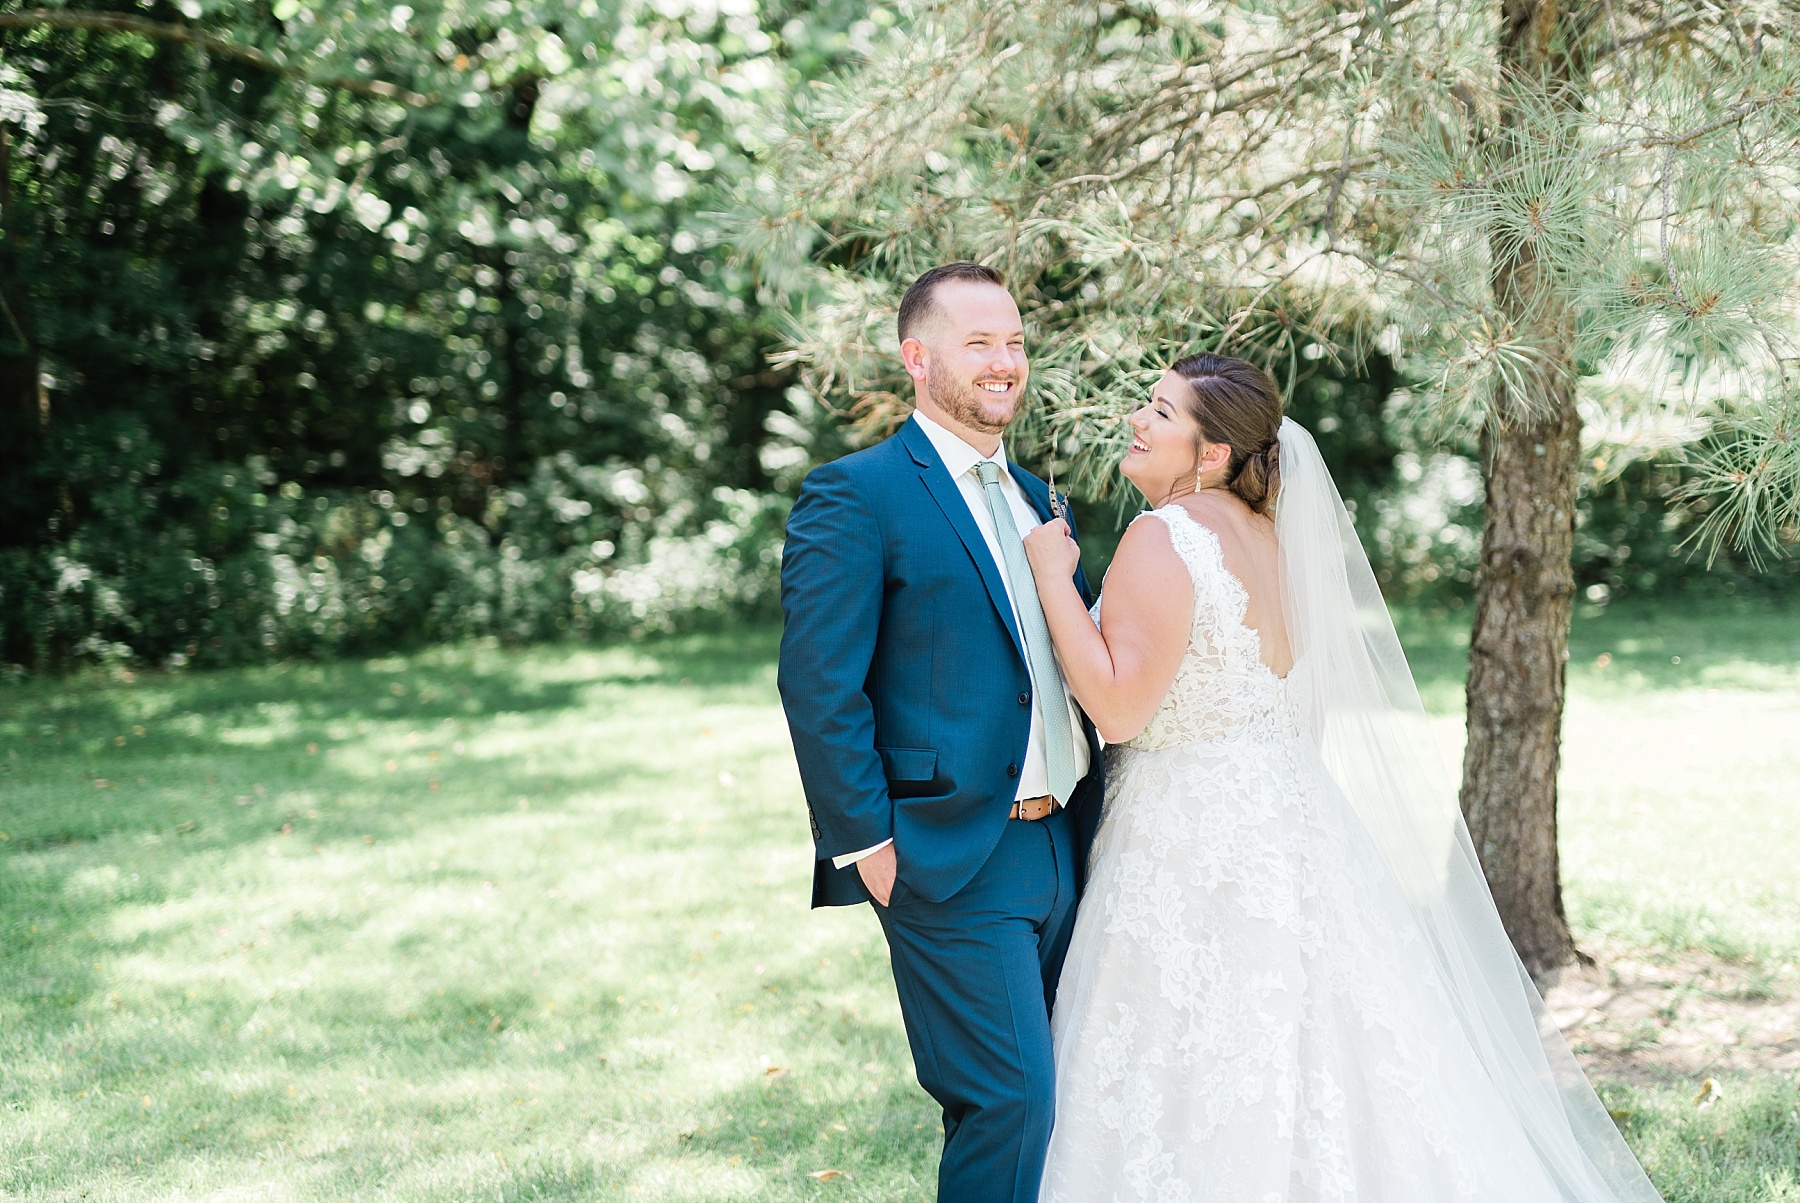 Montana Couple Married Lakeside with Mountain Themed Wedding At Little Piney Lodge Hermann MO by Kelsi Kliethermes Photography_0020.jpg